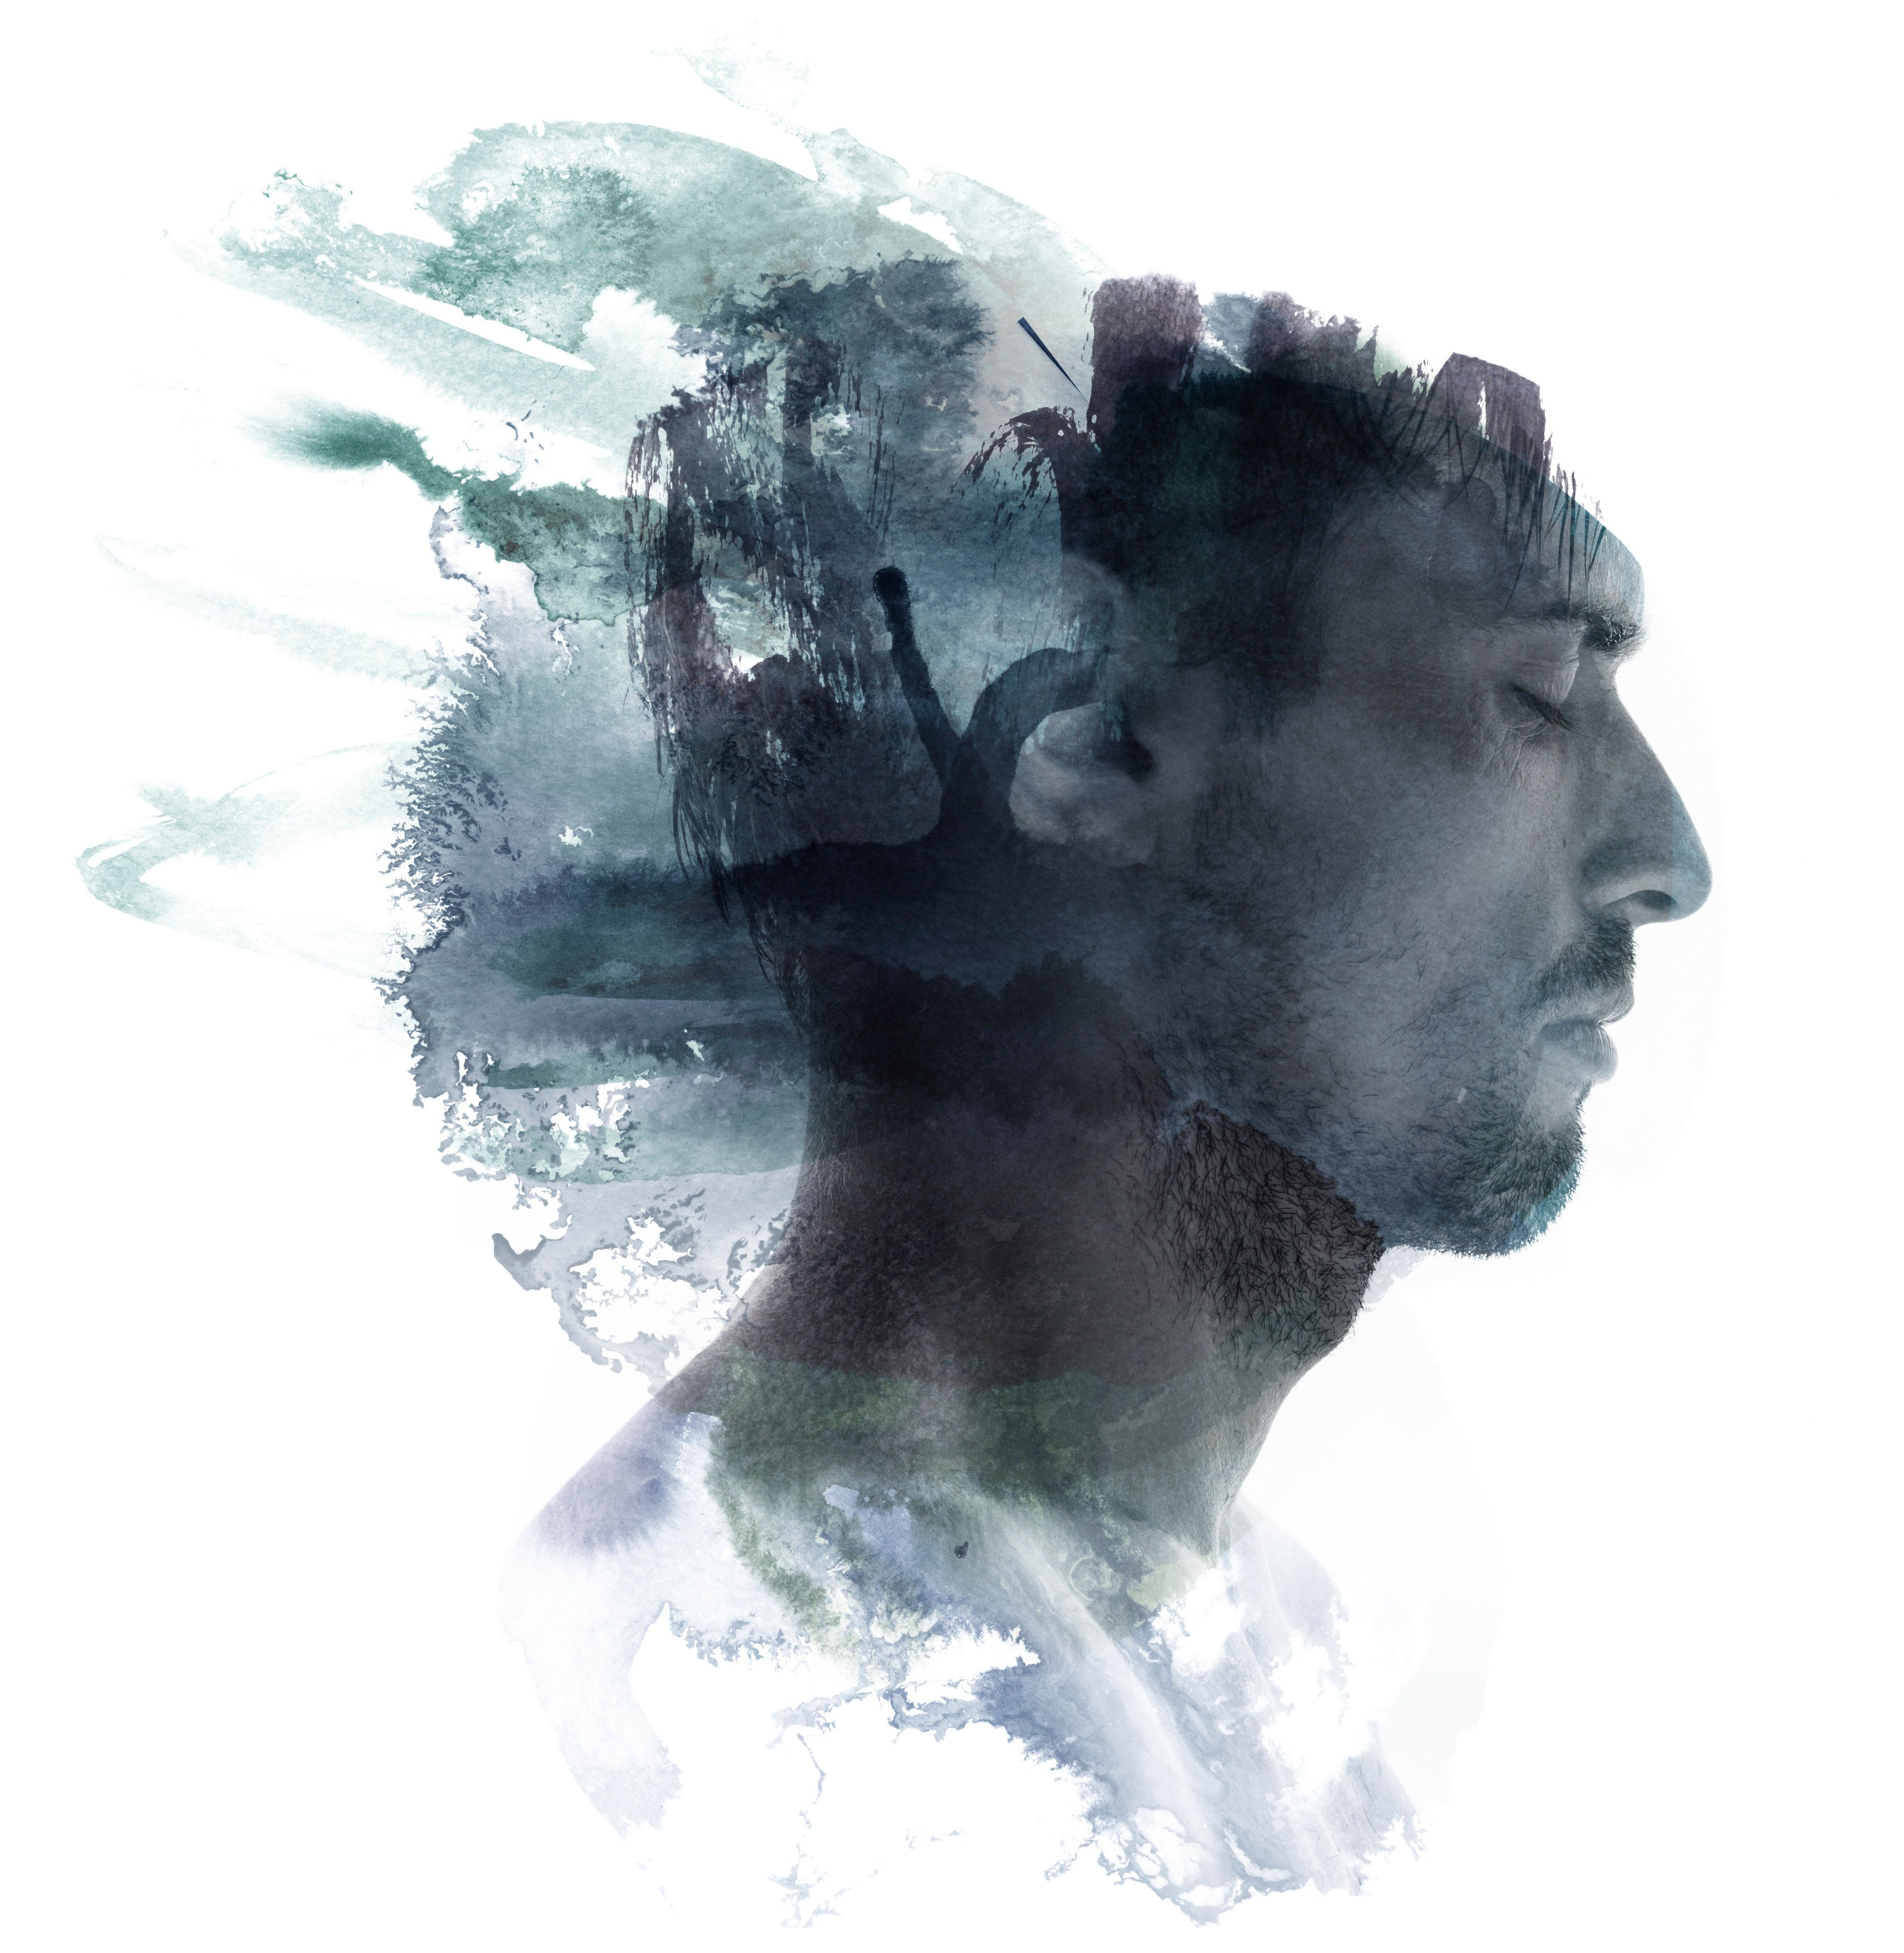 Meditative portrait of attractive man combined with watercolor drawing